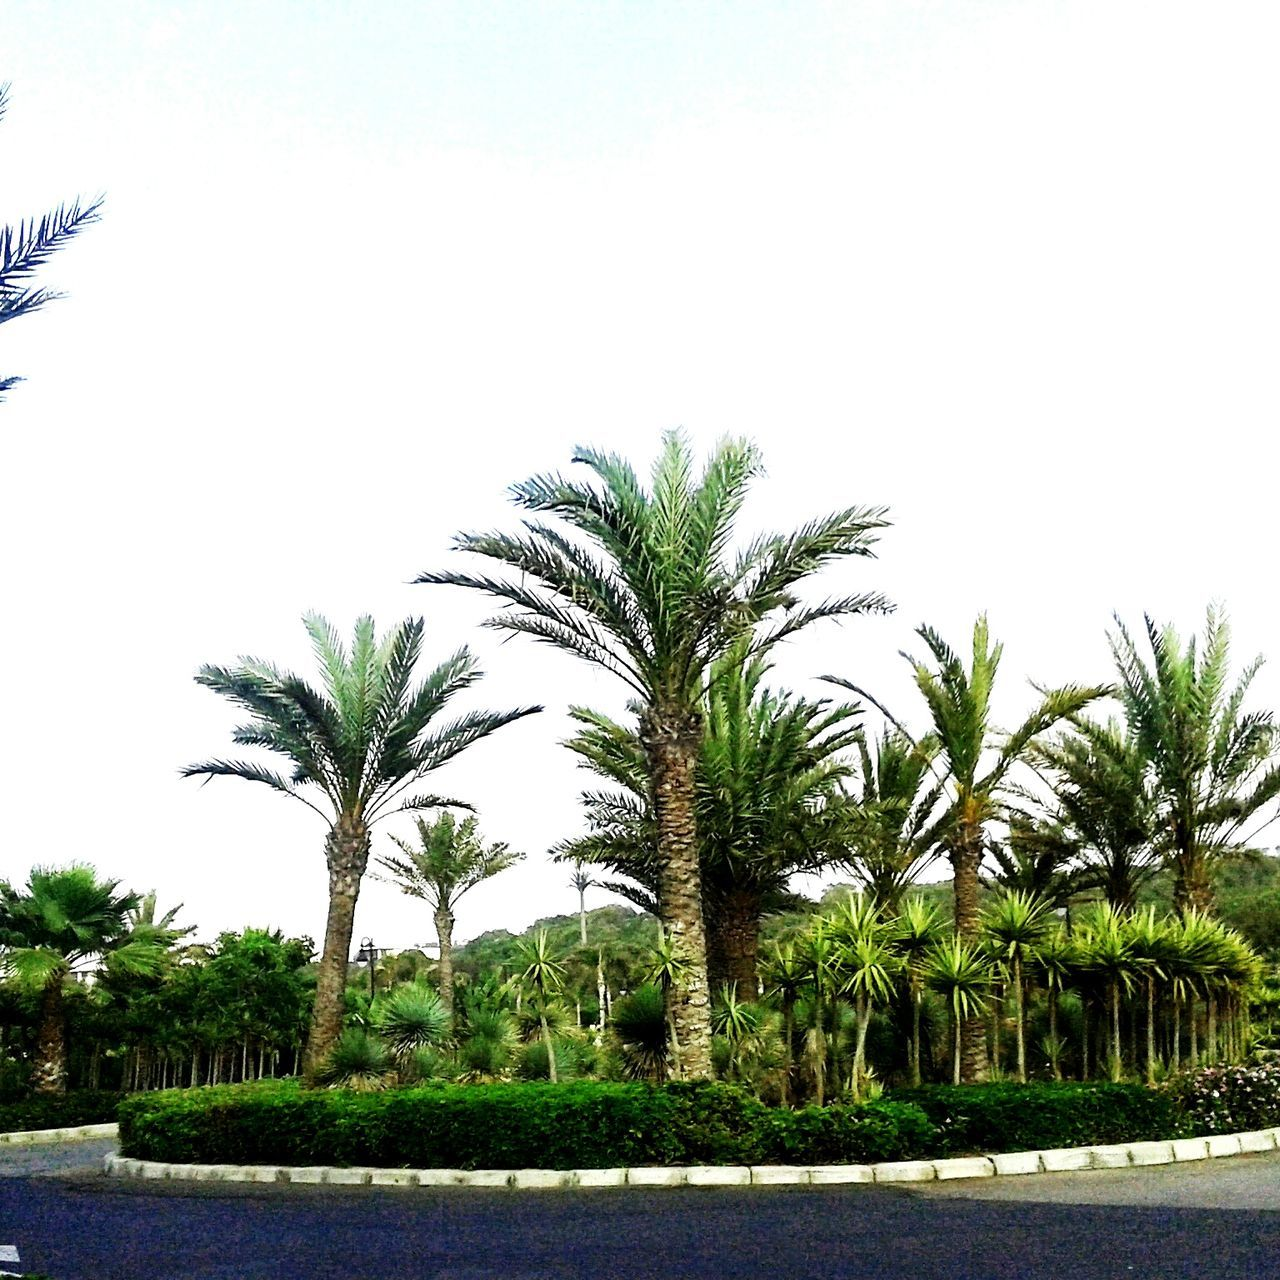 palm tree, tree, growth, nature, clear sky, outdoors, no people, sky, day, beauty in nature, water, scenics, grass